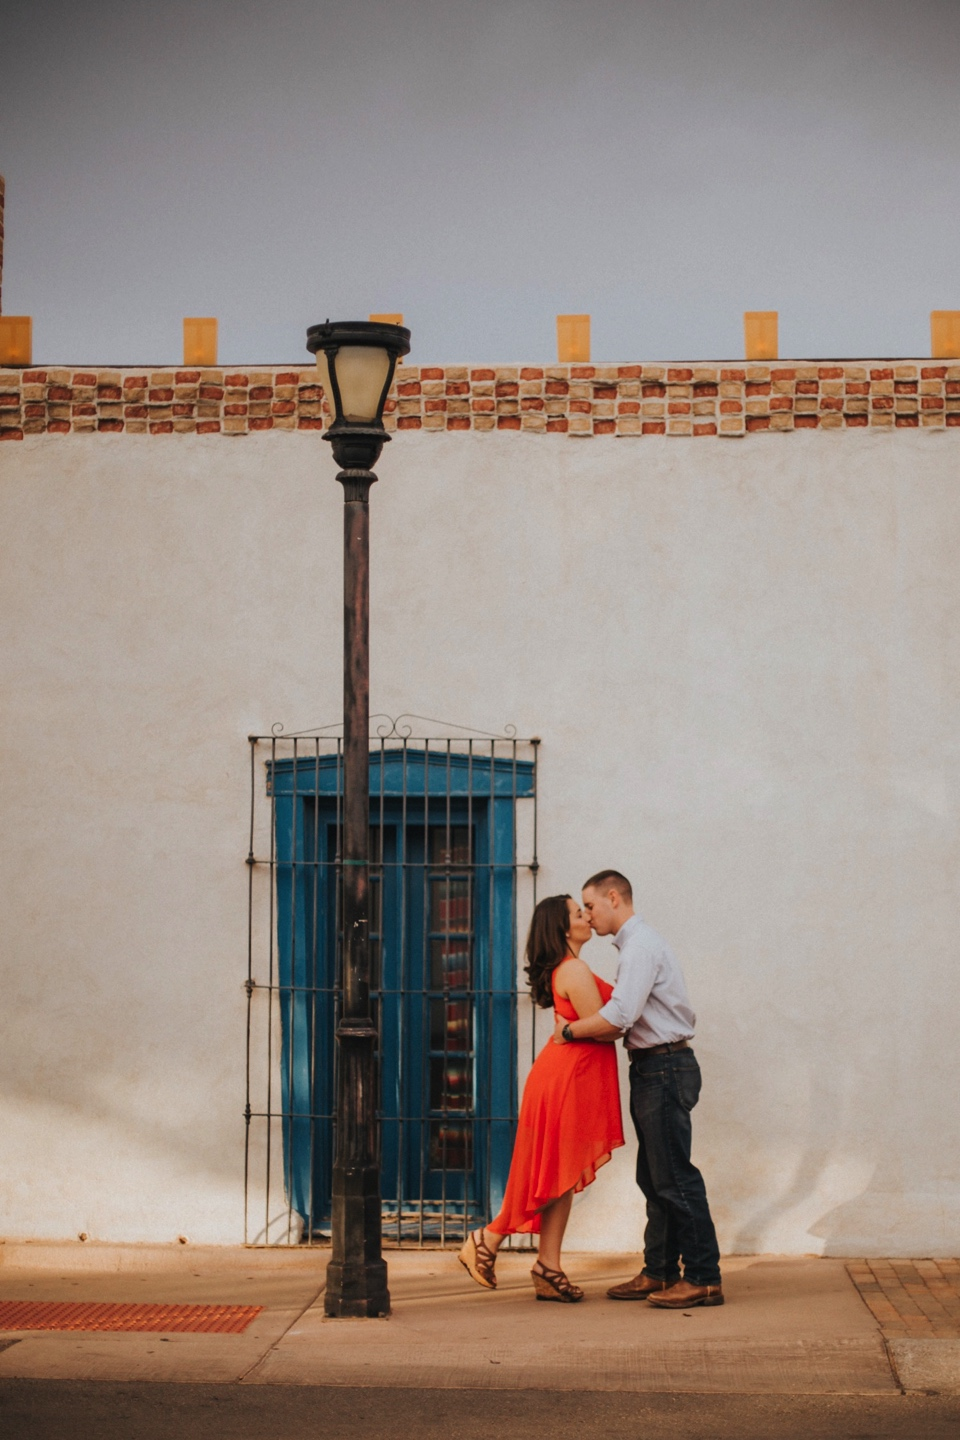 I loved Kristina's beautiful pink dress and Mitch's rustic yet classy outfit. Talk about engagement photo inspiration! We then traveled to Mesilla, New Mexico to capture their love fest in the La Plaza de Mesilla as well as in front of the Basilica San Albino Catholic Church. Mesilla is a gorgeous little town to capture engagement photos in and I had a blast with Kristina and Mitch (as well as their cute little corgi pup)!